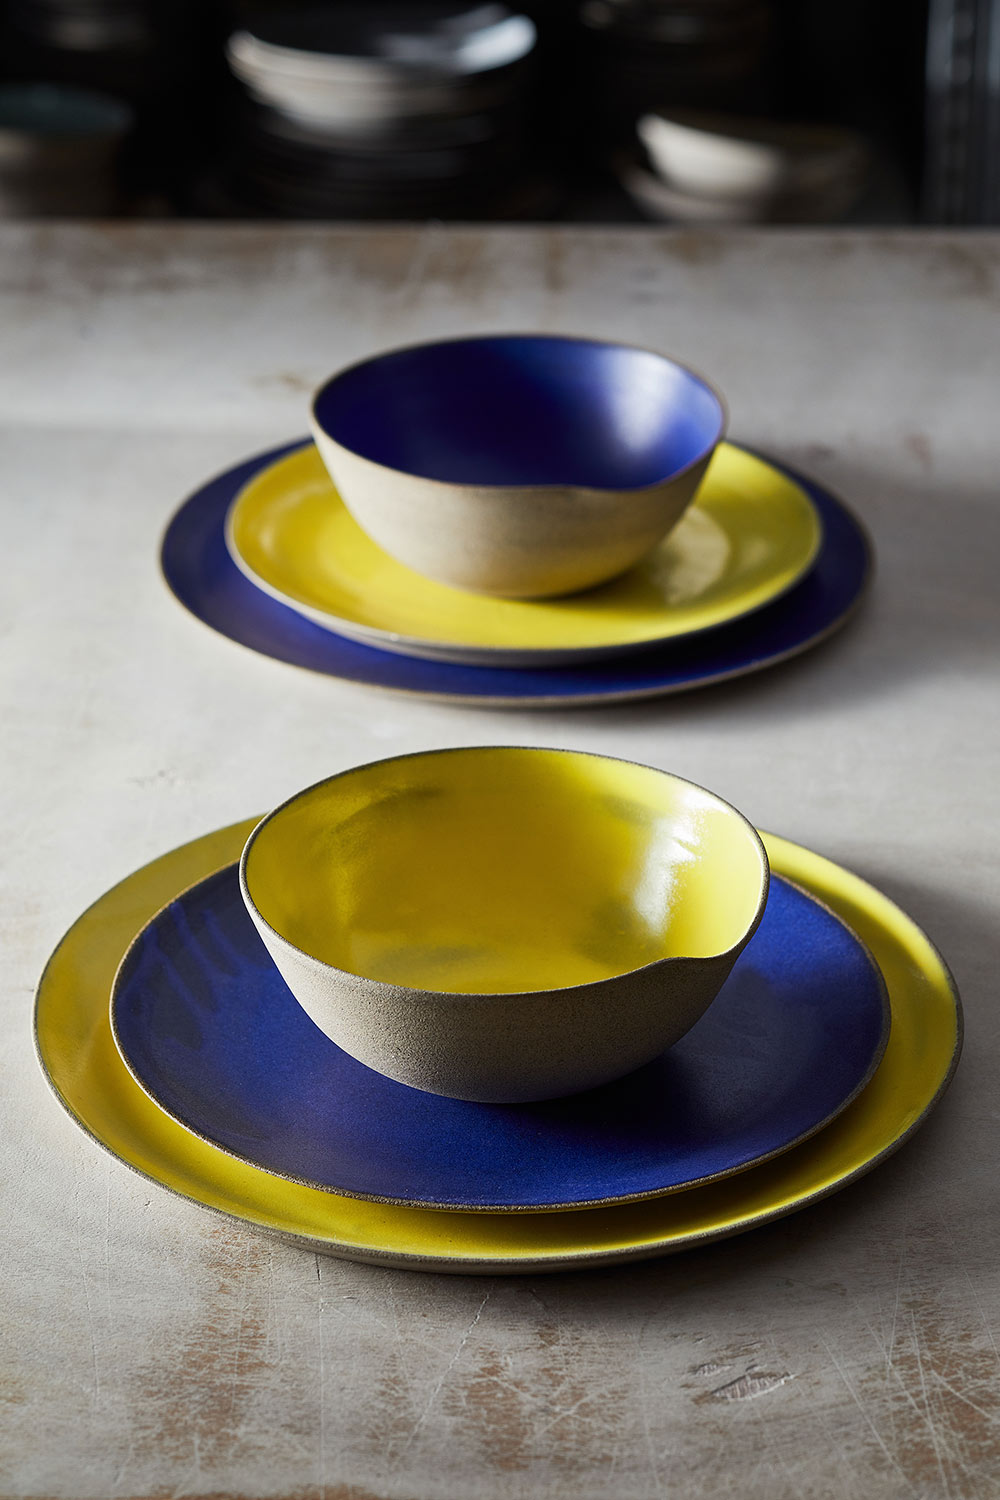 Night and Day Dinner Set - Vered Tandler Dayan (7)